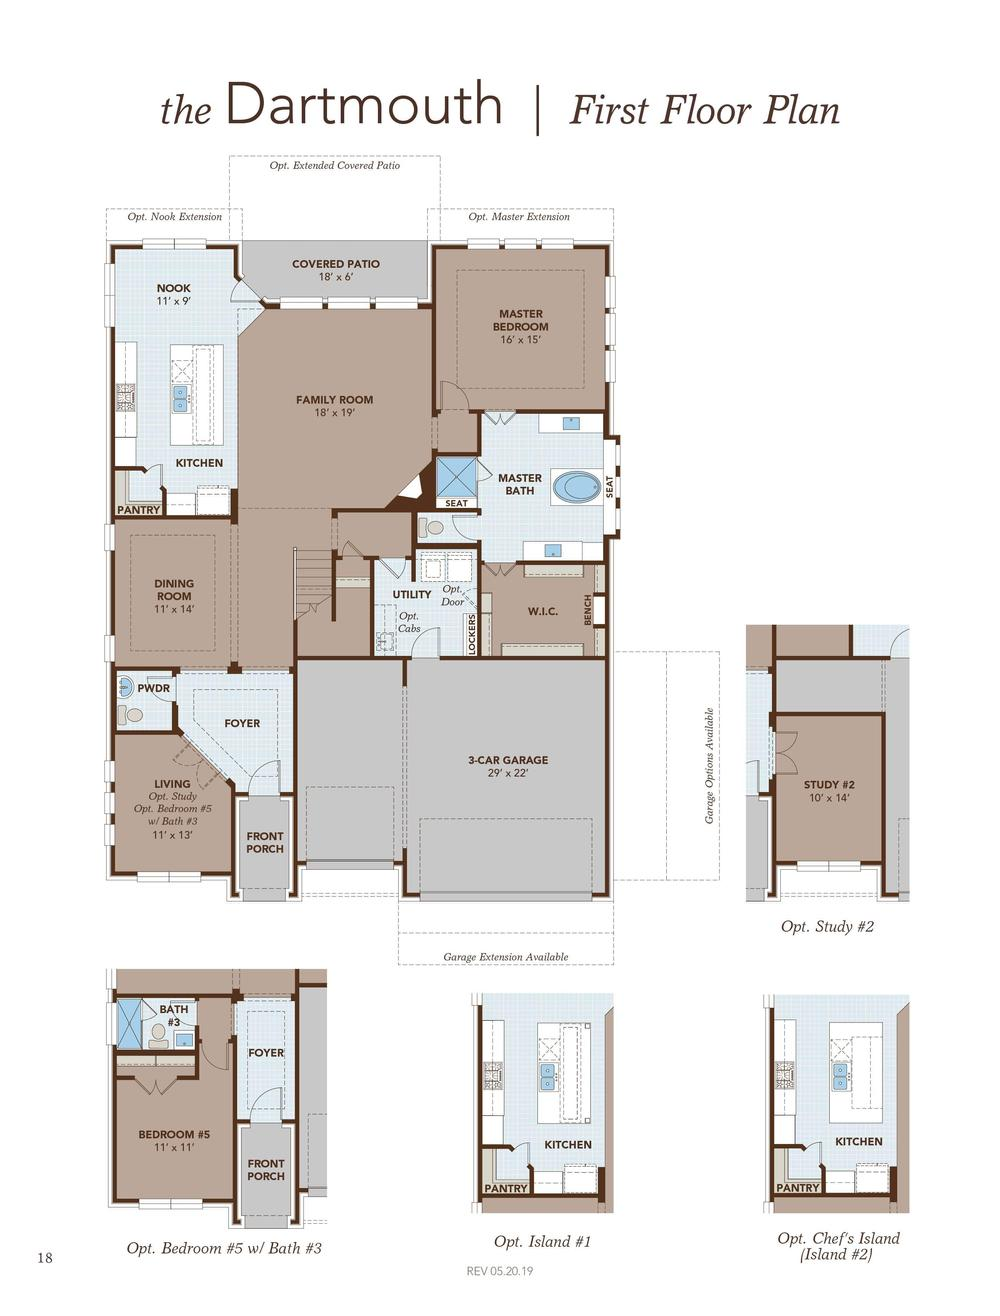 Dartmouth First Floor Plan